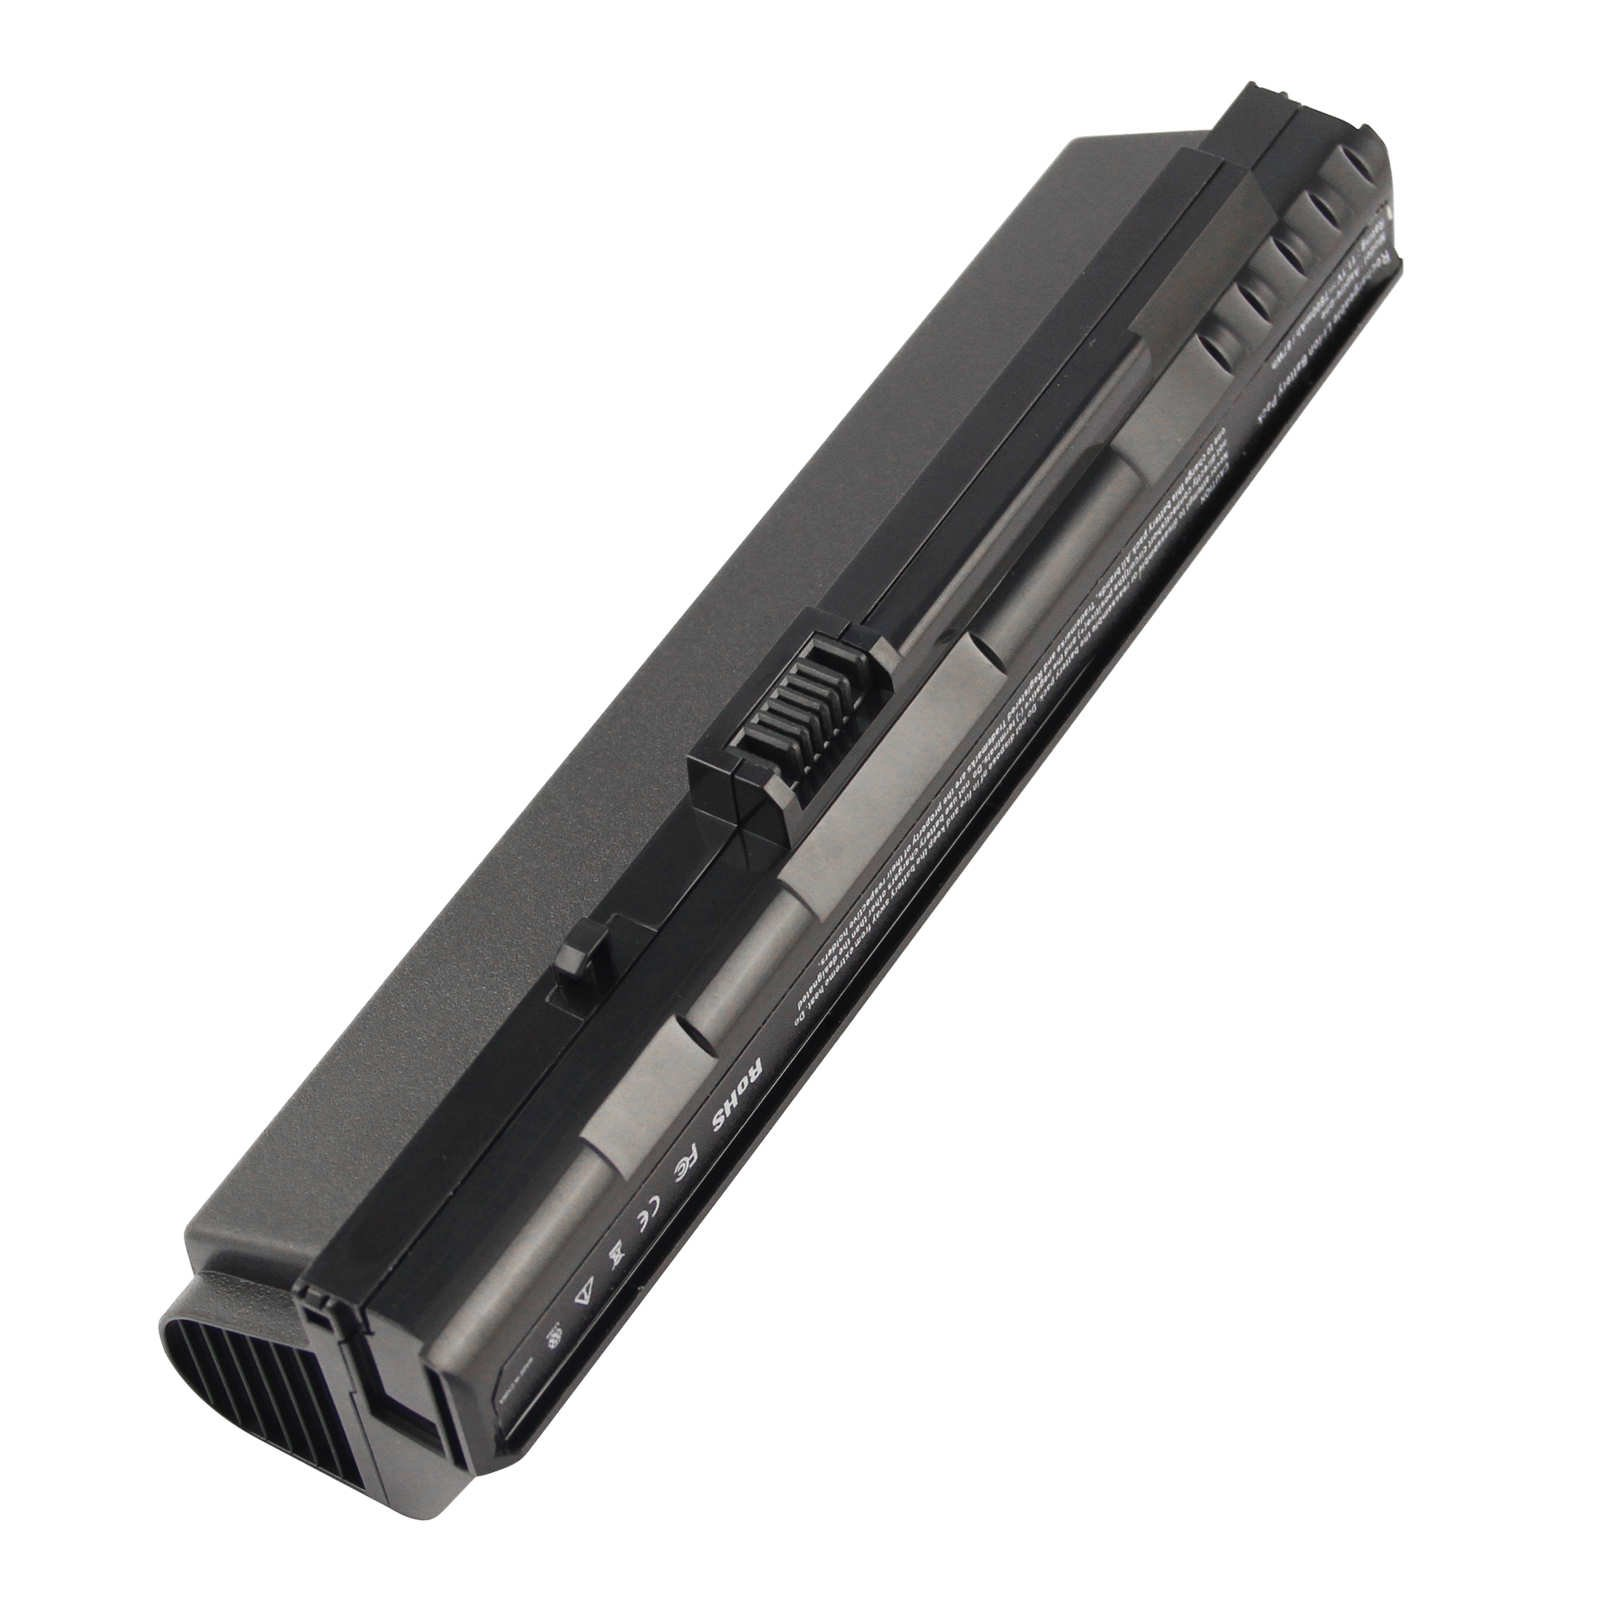 ARyee 7800mAh 11.1V Battery Laptop Battery Replacement for Acer UM08A31 UM08A32 UM08A51 UM08A52 UM08A71 UM08A72 UM08A73 UM08A74 UM08B31 UM08B32 UM08B52 UM08B71 UM08B72 UM08B73 UM08B74 Gateway UM08A31